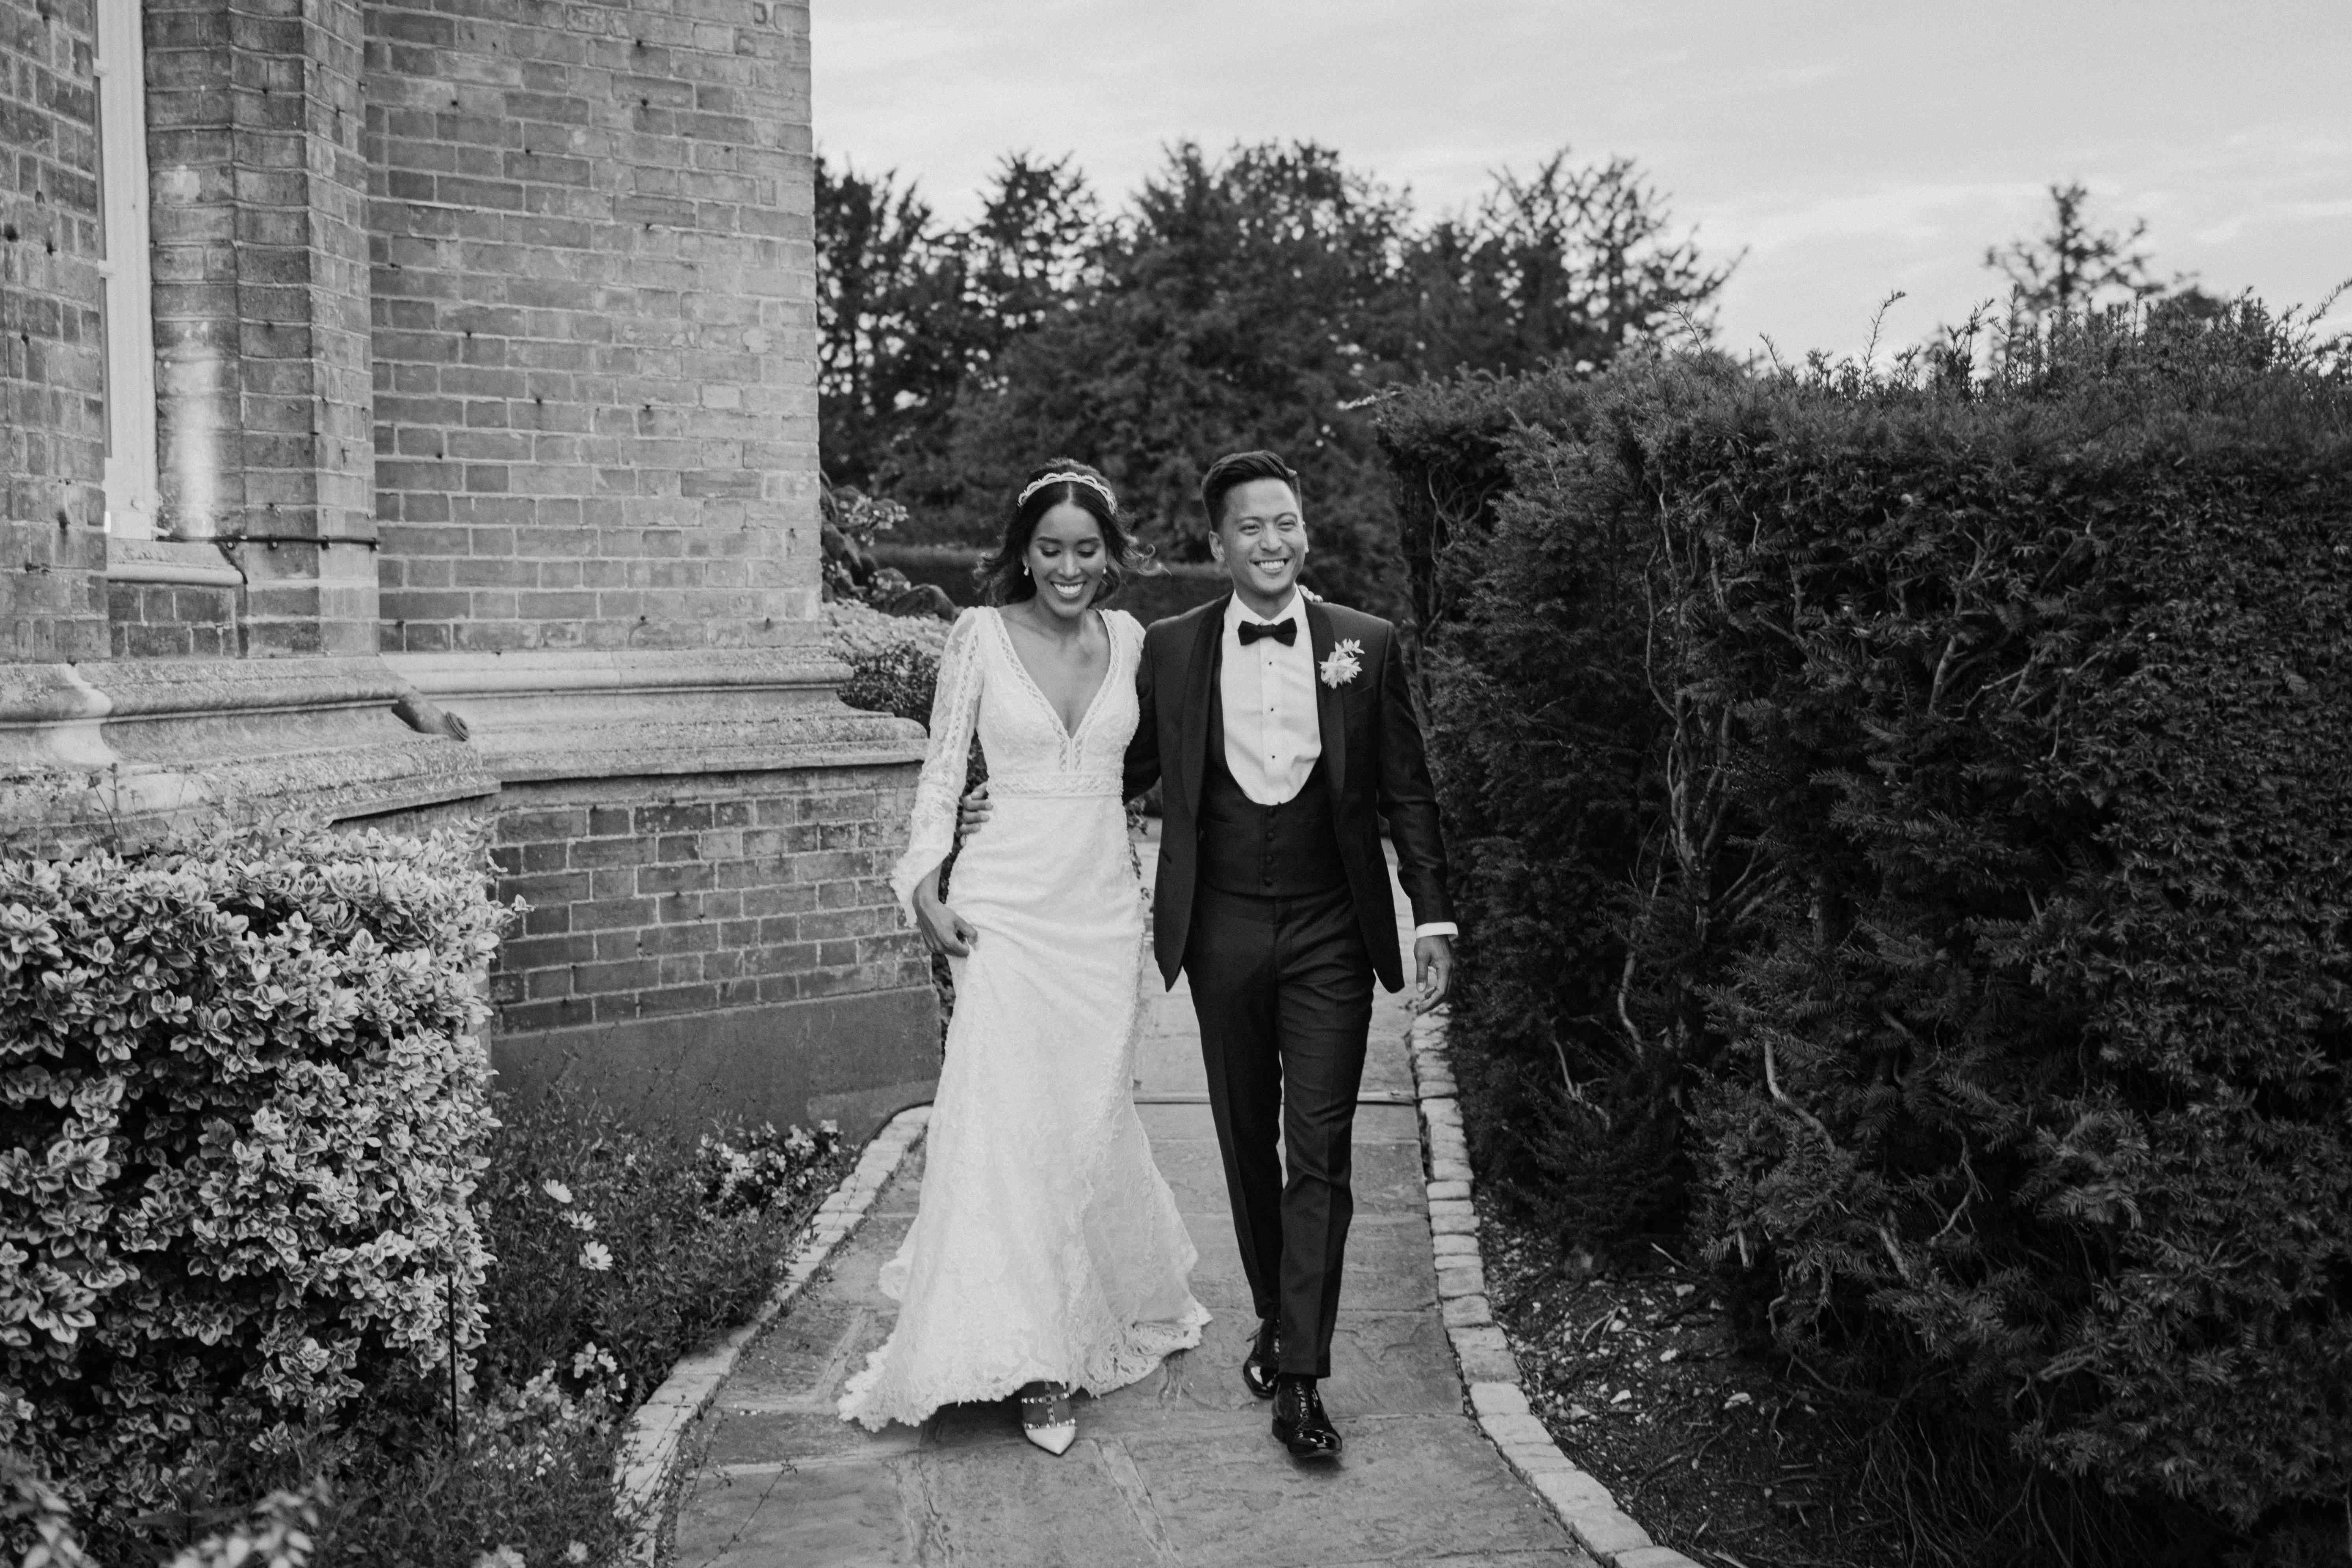 The bride and groom take a walk